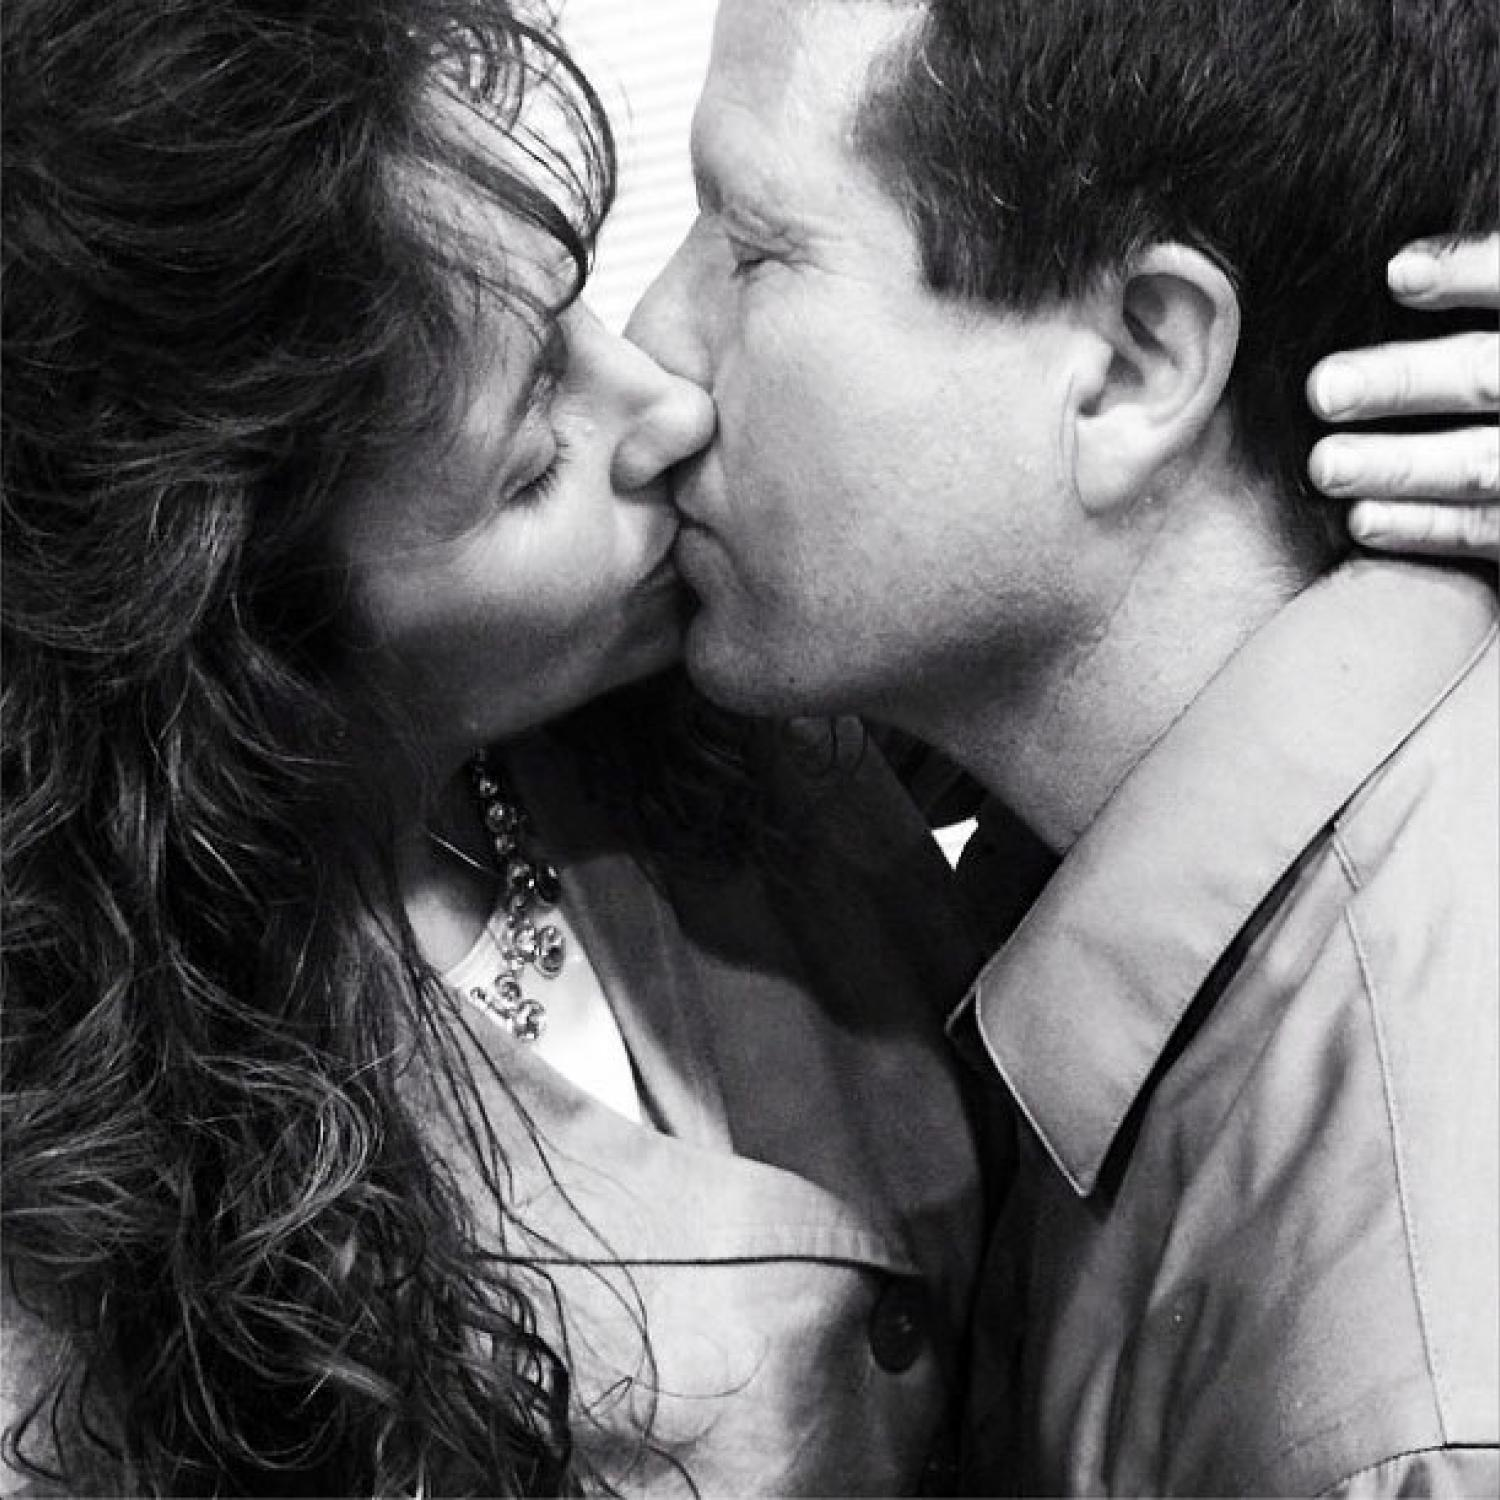 duggar family gone wild kissing on instagram | parenting